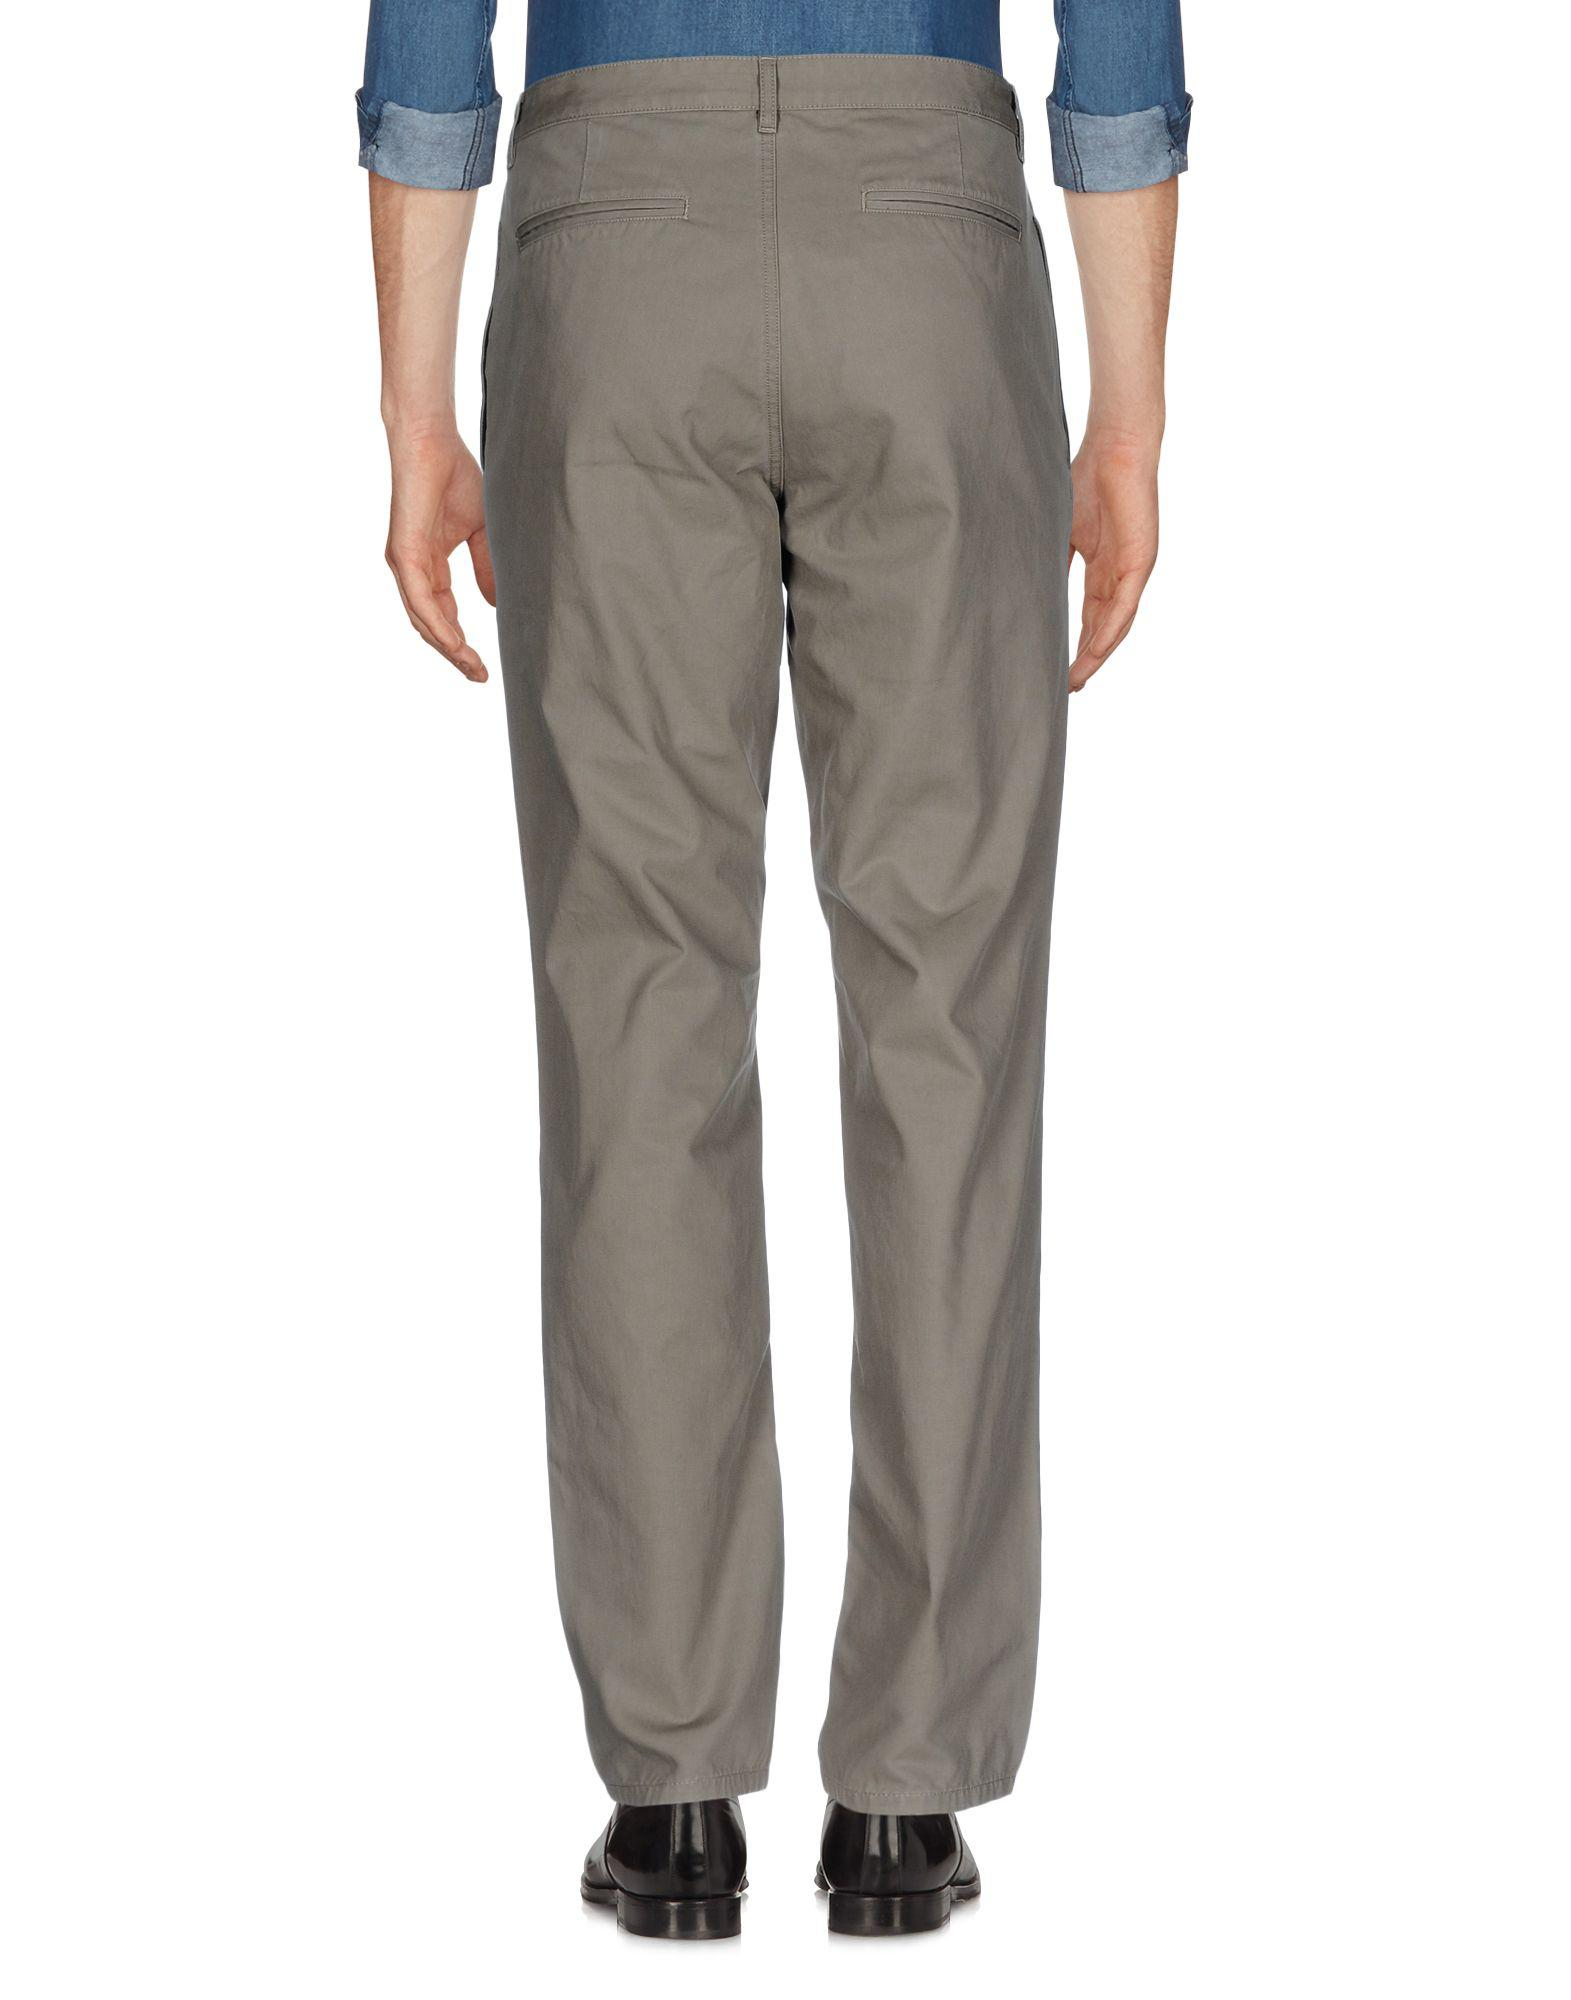 A.P.C. Cotton Casual Trouser in Military Green (Grey) for Men